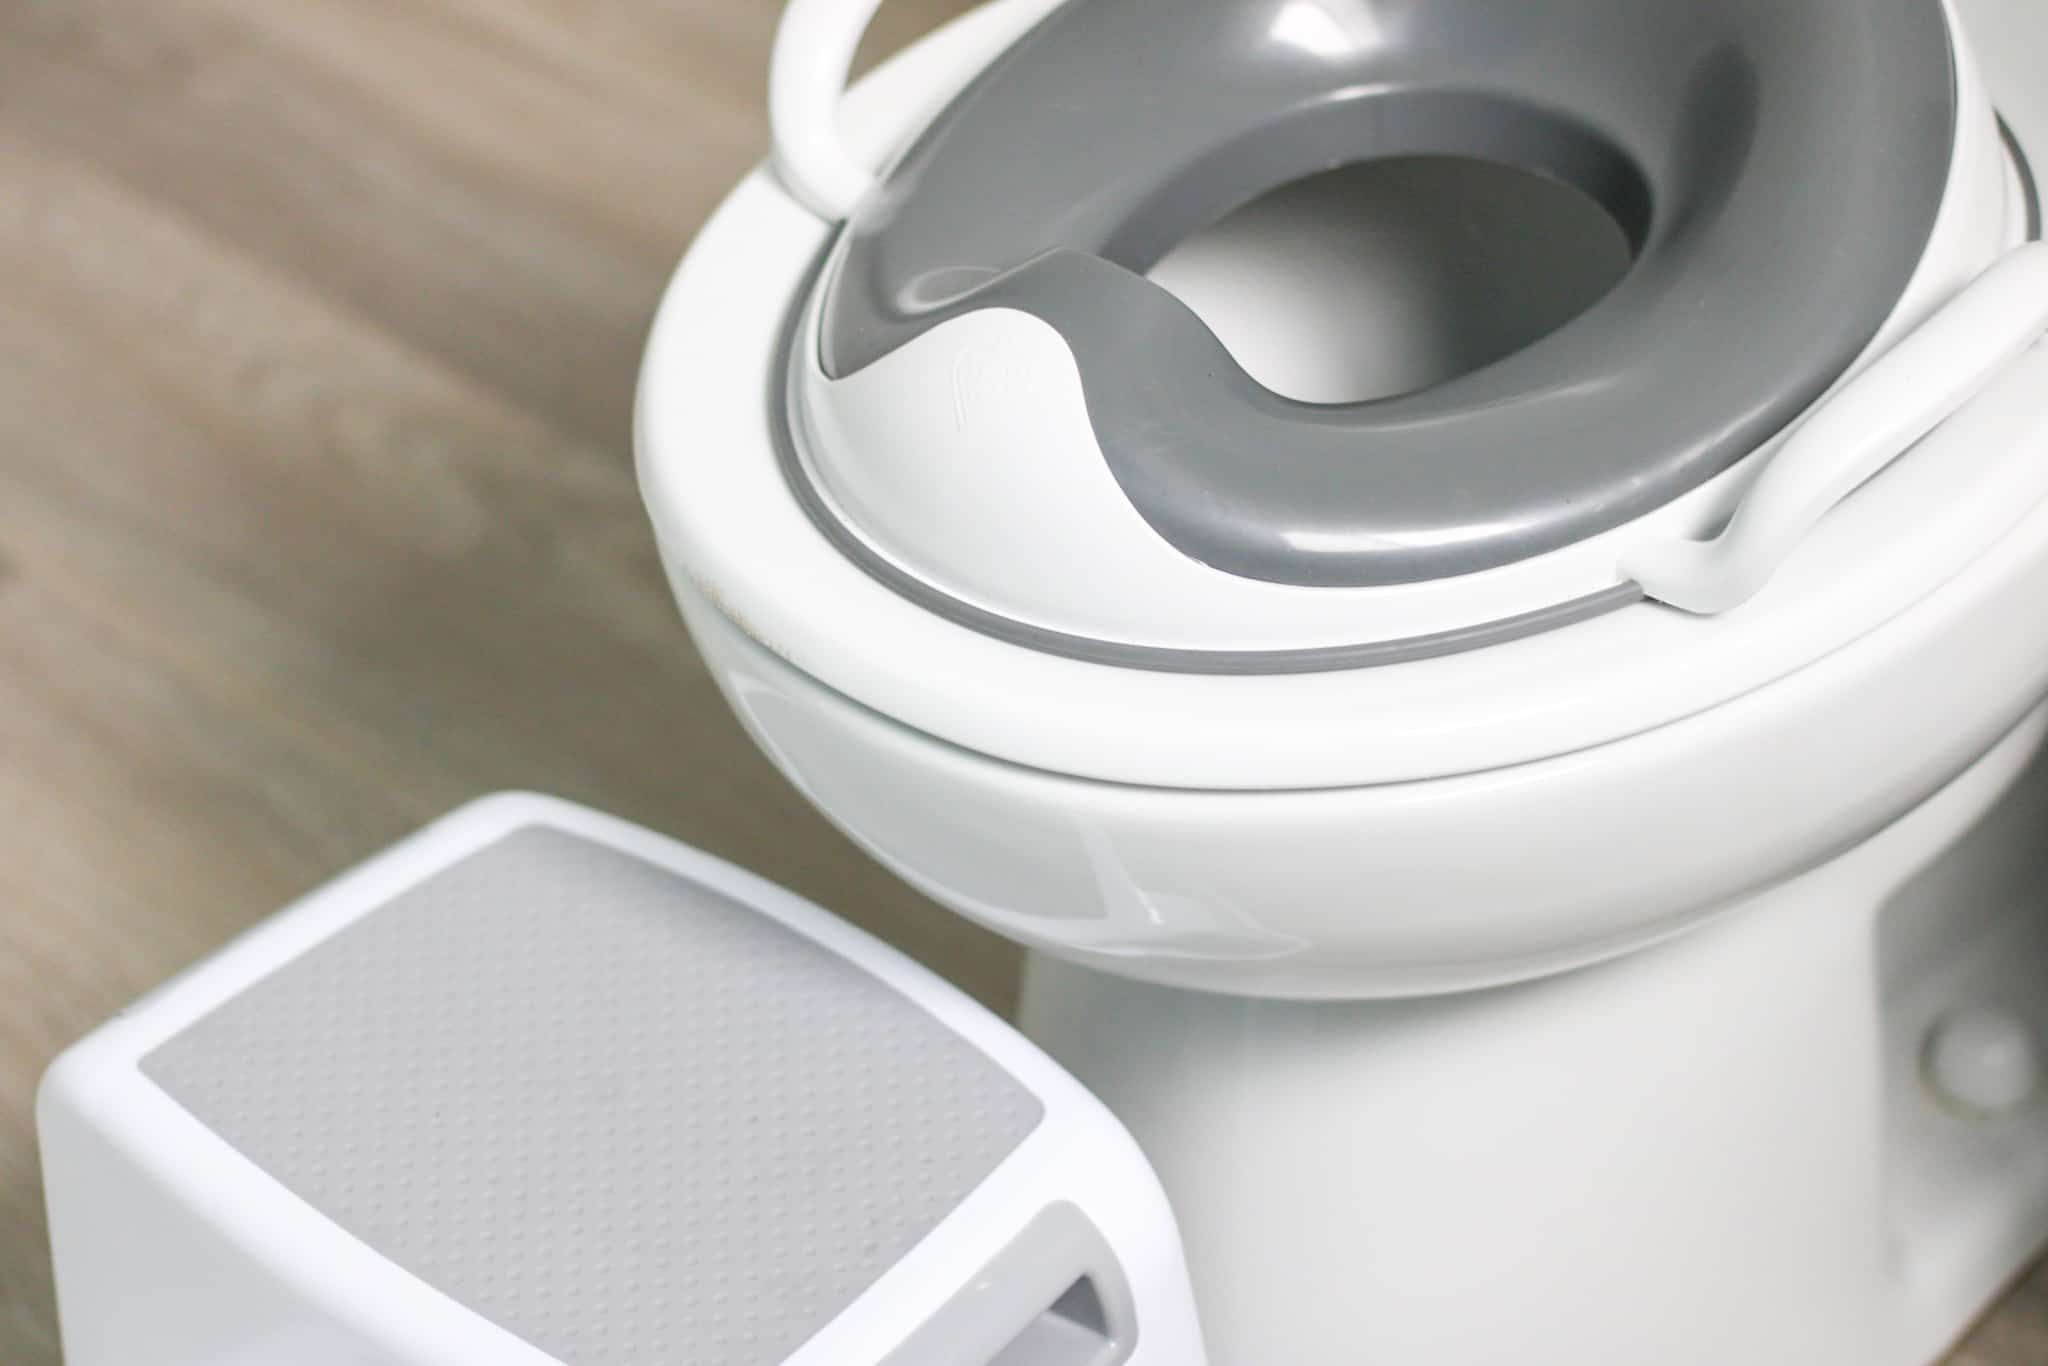 toilet seat reducer and step stool